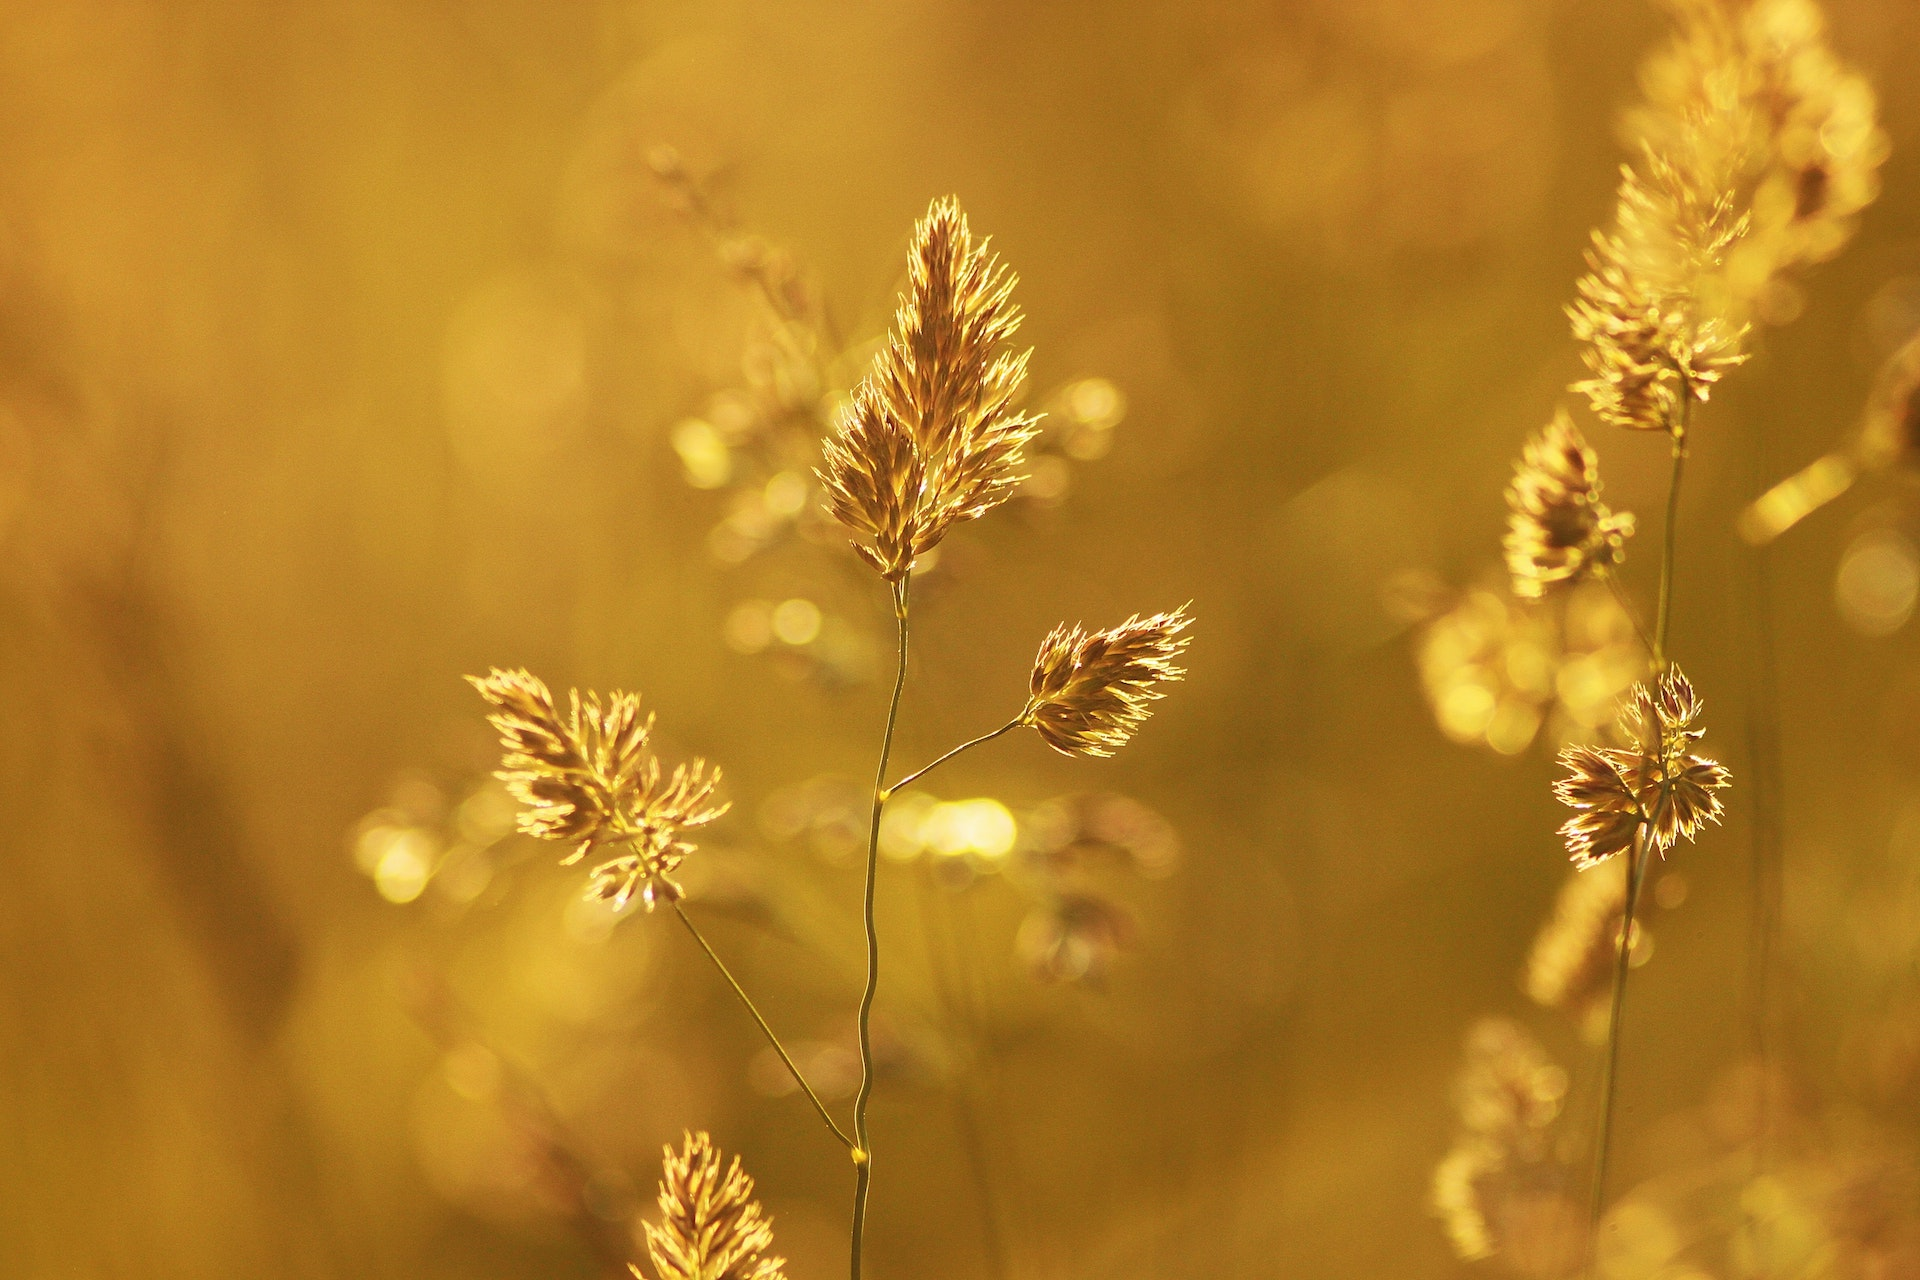 Close-up of Wheat Plant during Sunset